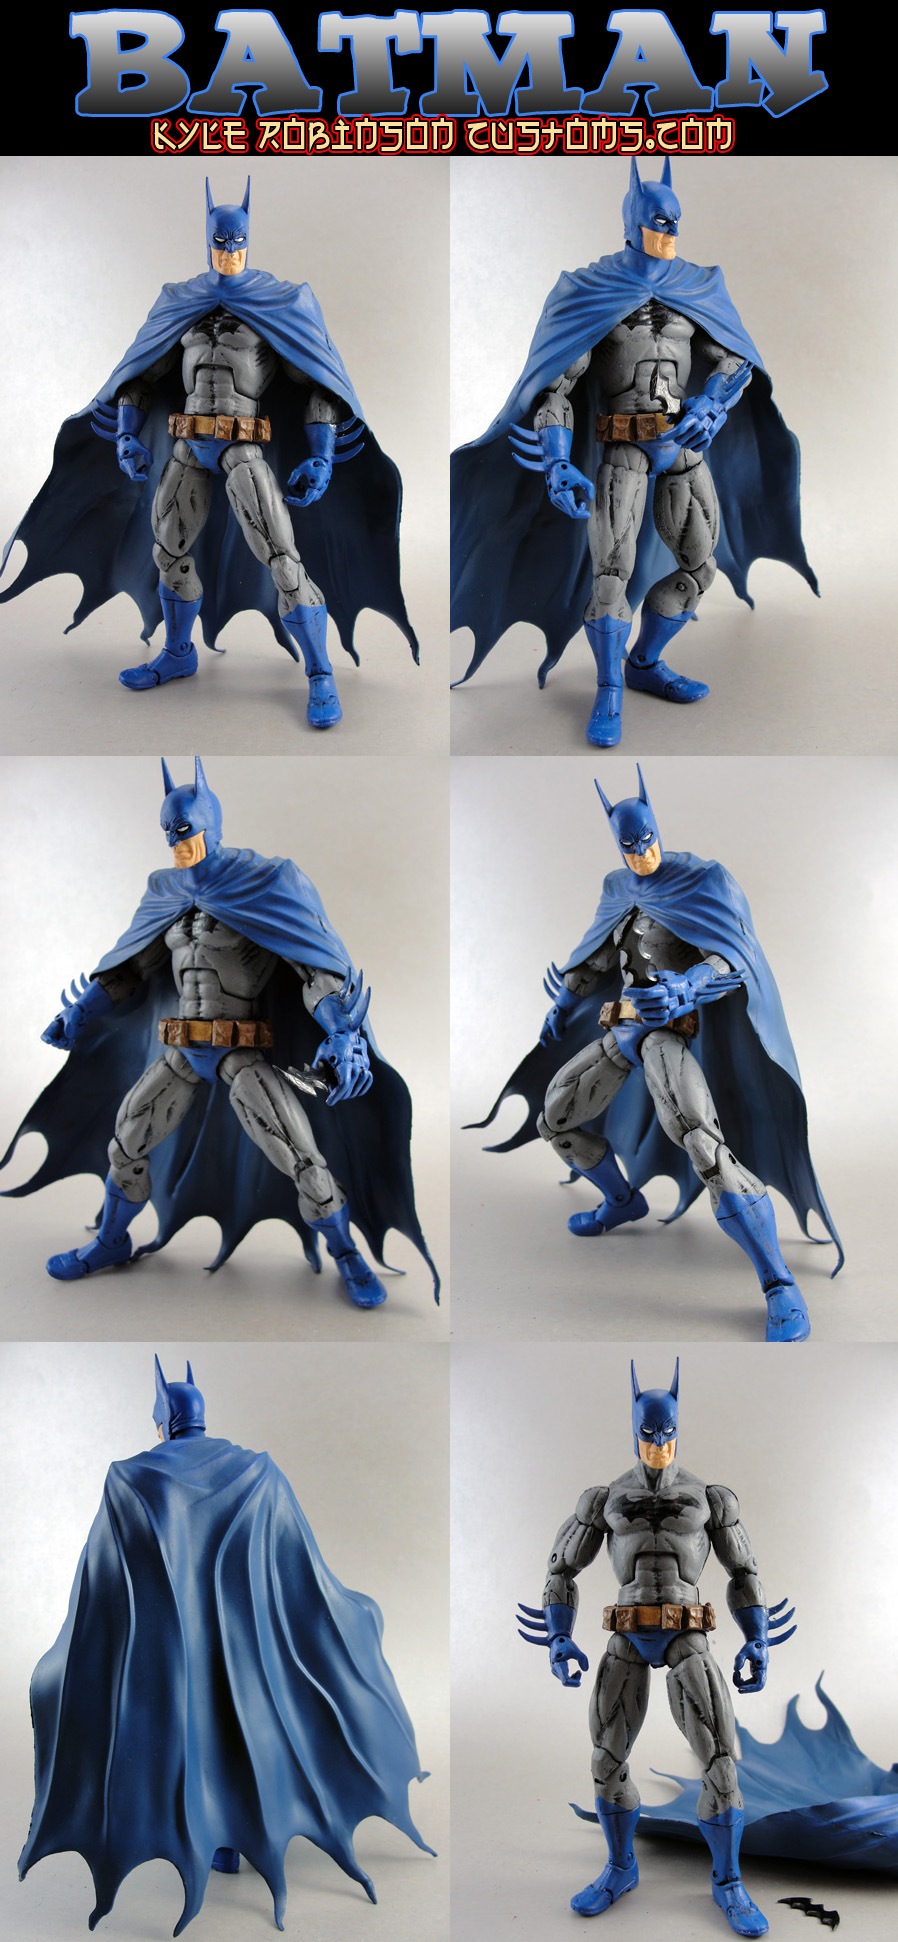 Custom Batman Ed Benes Style by KyleRobinsonCustoms